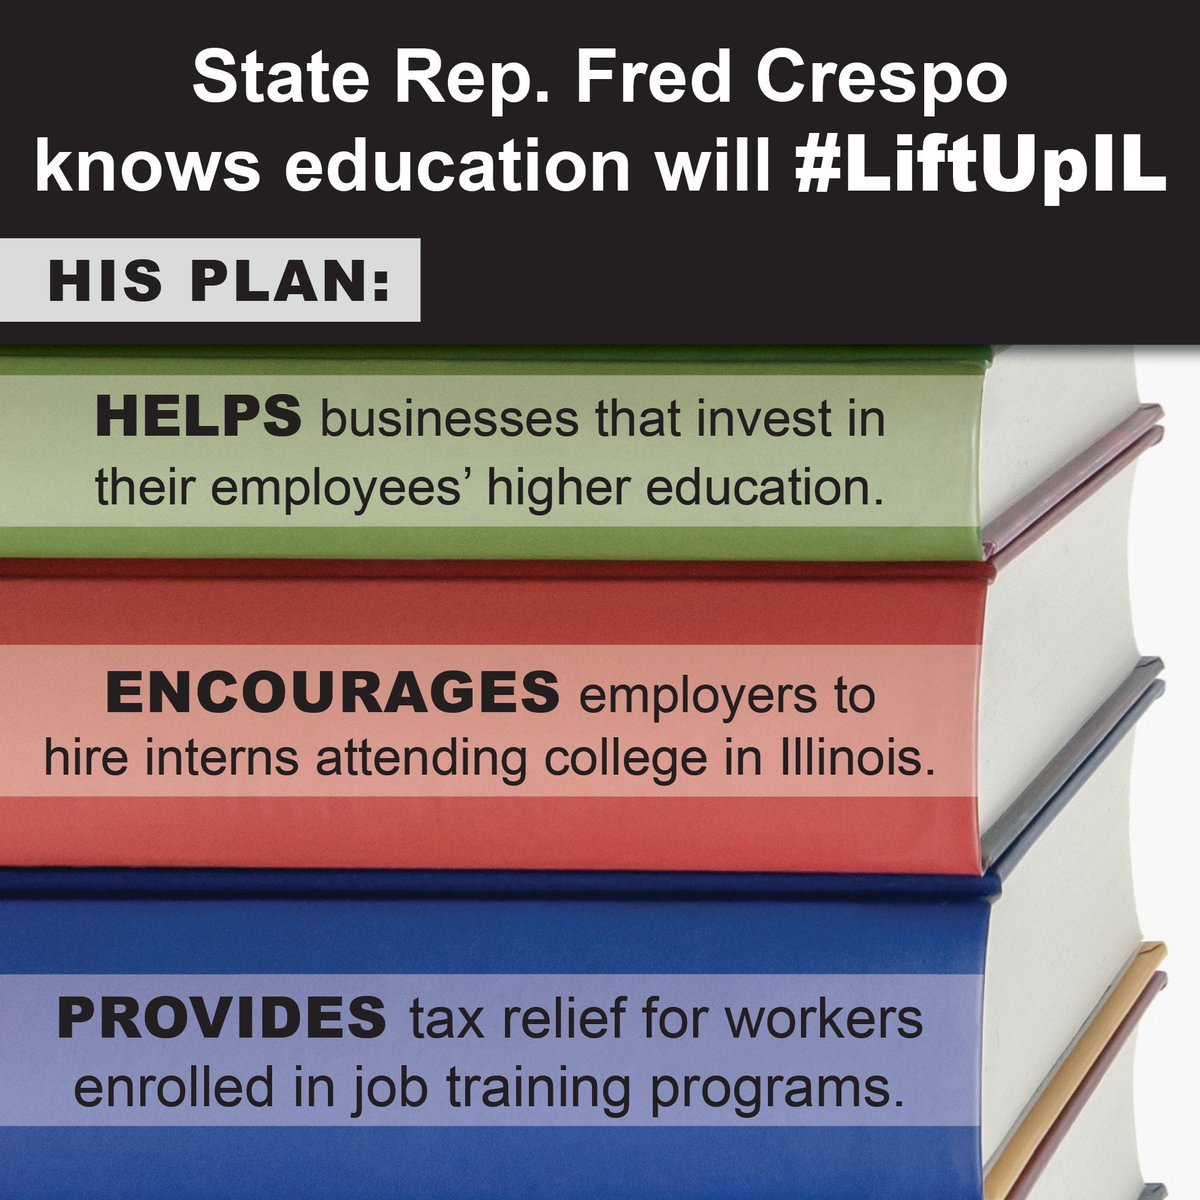 test Twitter Media - A STRONG economy begins w/ a STRONG workforce. #LiftUpIL. By making IL a great place to go to school & work, we are building a strong future https://t.co/2F0tEHIm5e